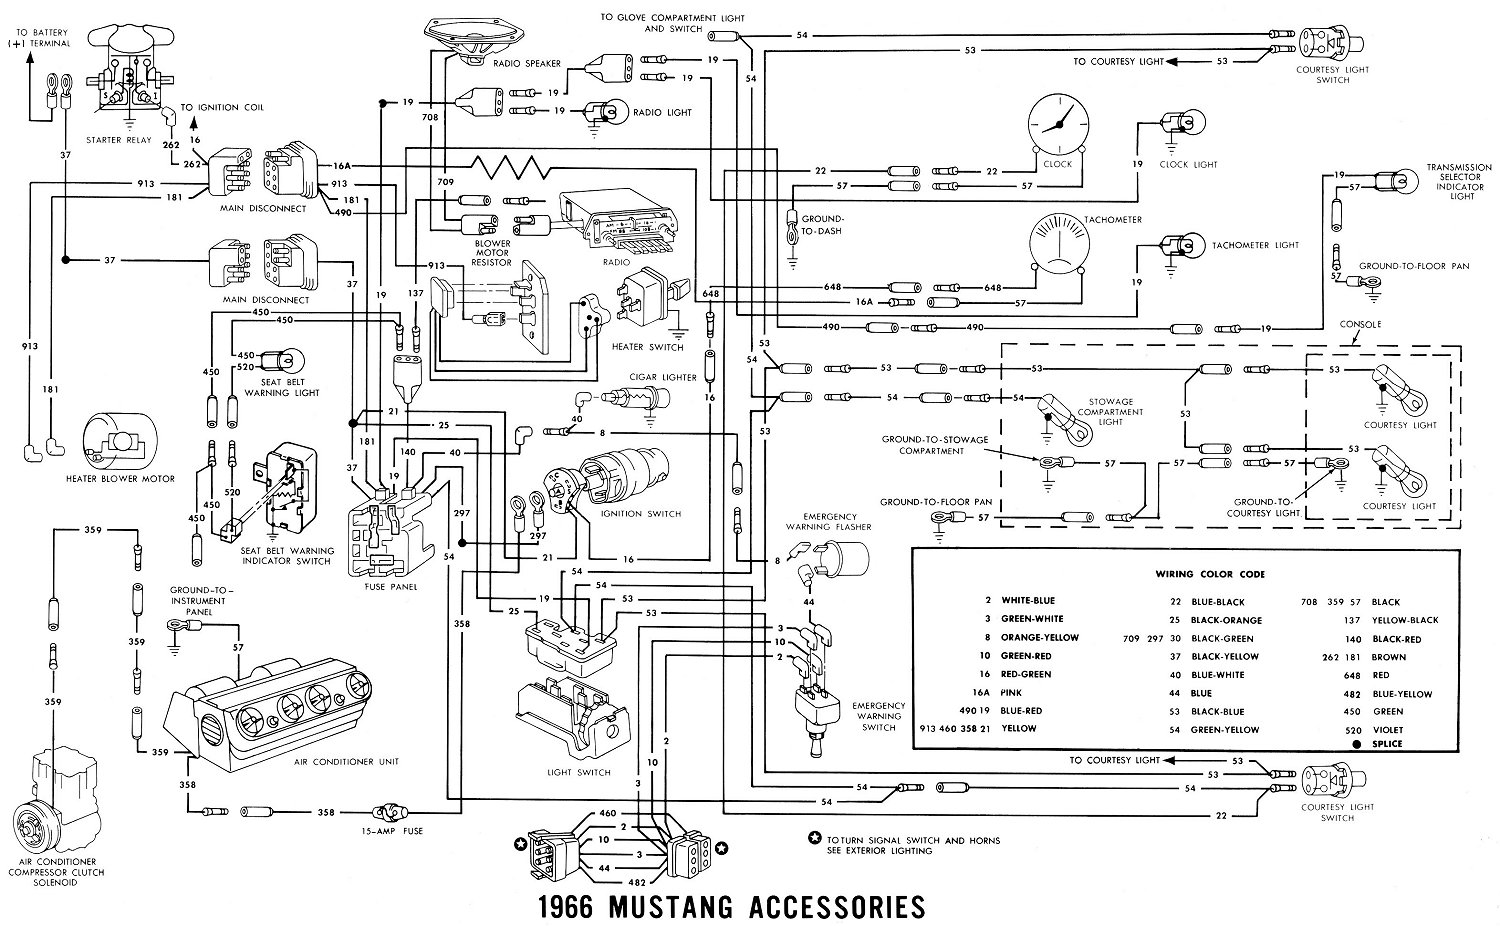 1969 Mustang Fuse Panel Diagram Starting Know About Wiring Ford Box 66 Radio Data Schema Rh Site De Joueurs Com Mach 1